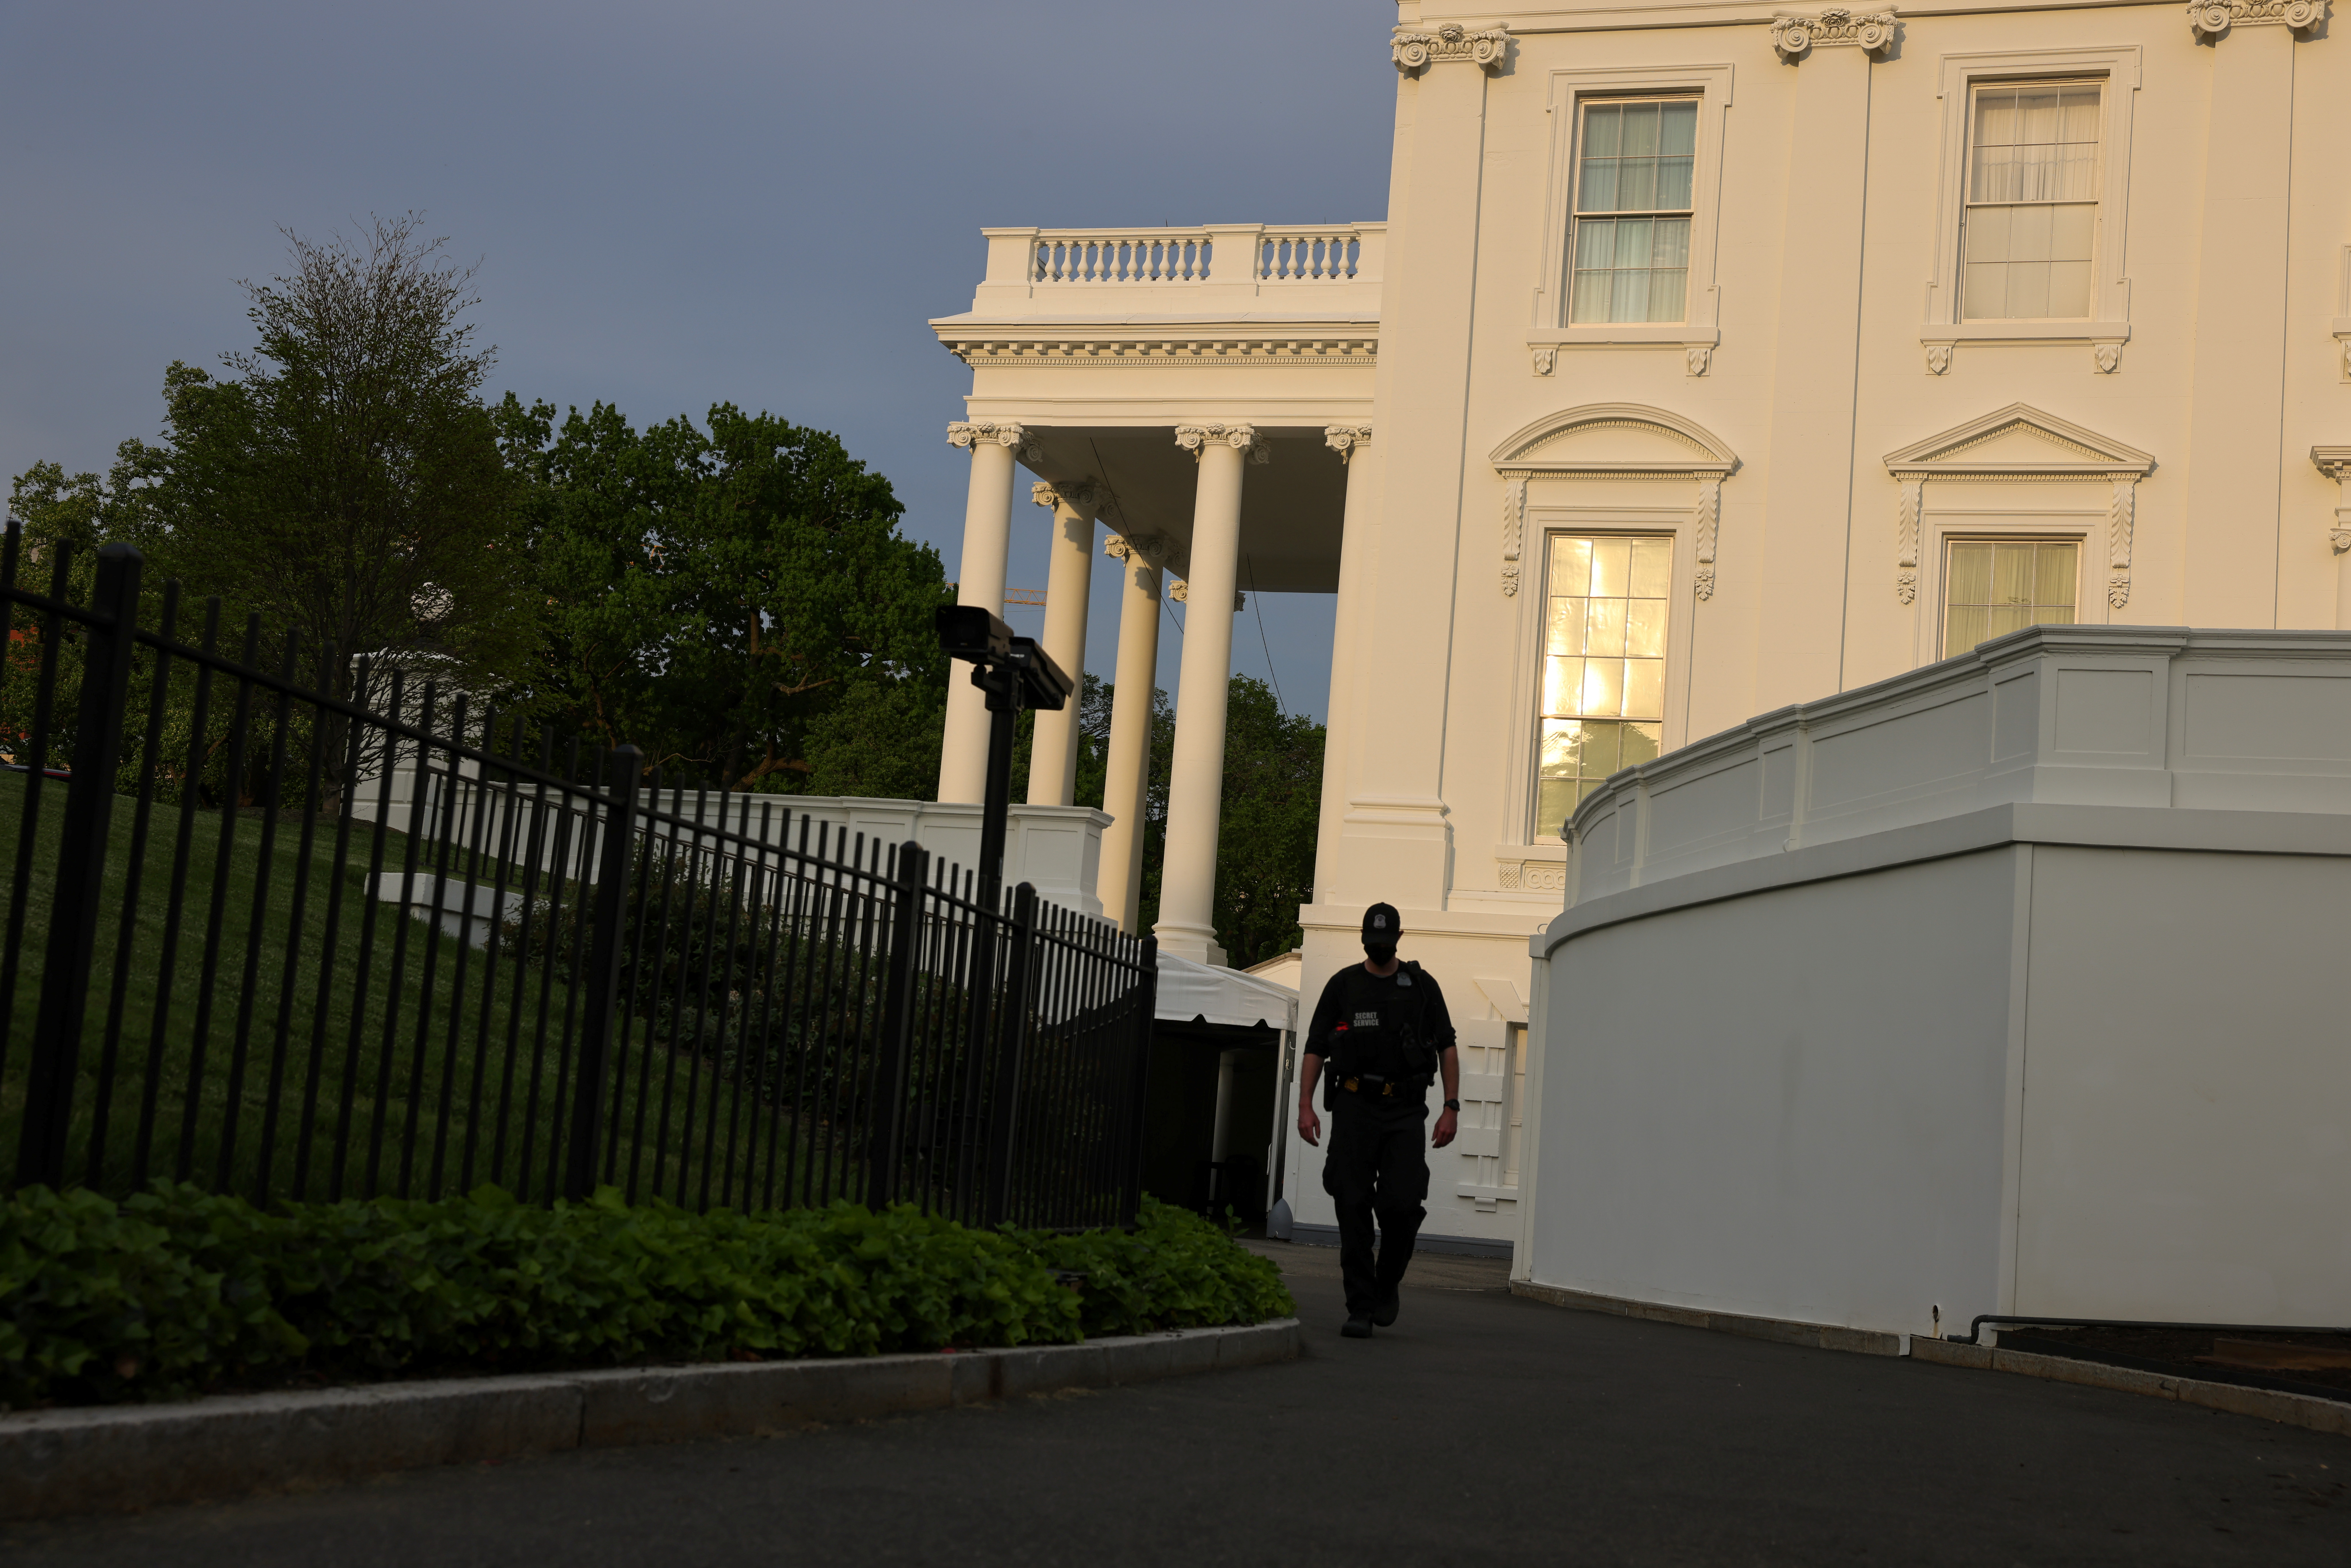 The sun reflects off the White House as a secret service agent walks past prior to President Joe Biden's speech before the Joint Session of Congress in Washington, U.S., April 28, 2021. REUTERS/Evelyn Hockstein